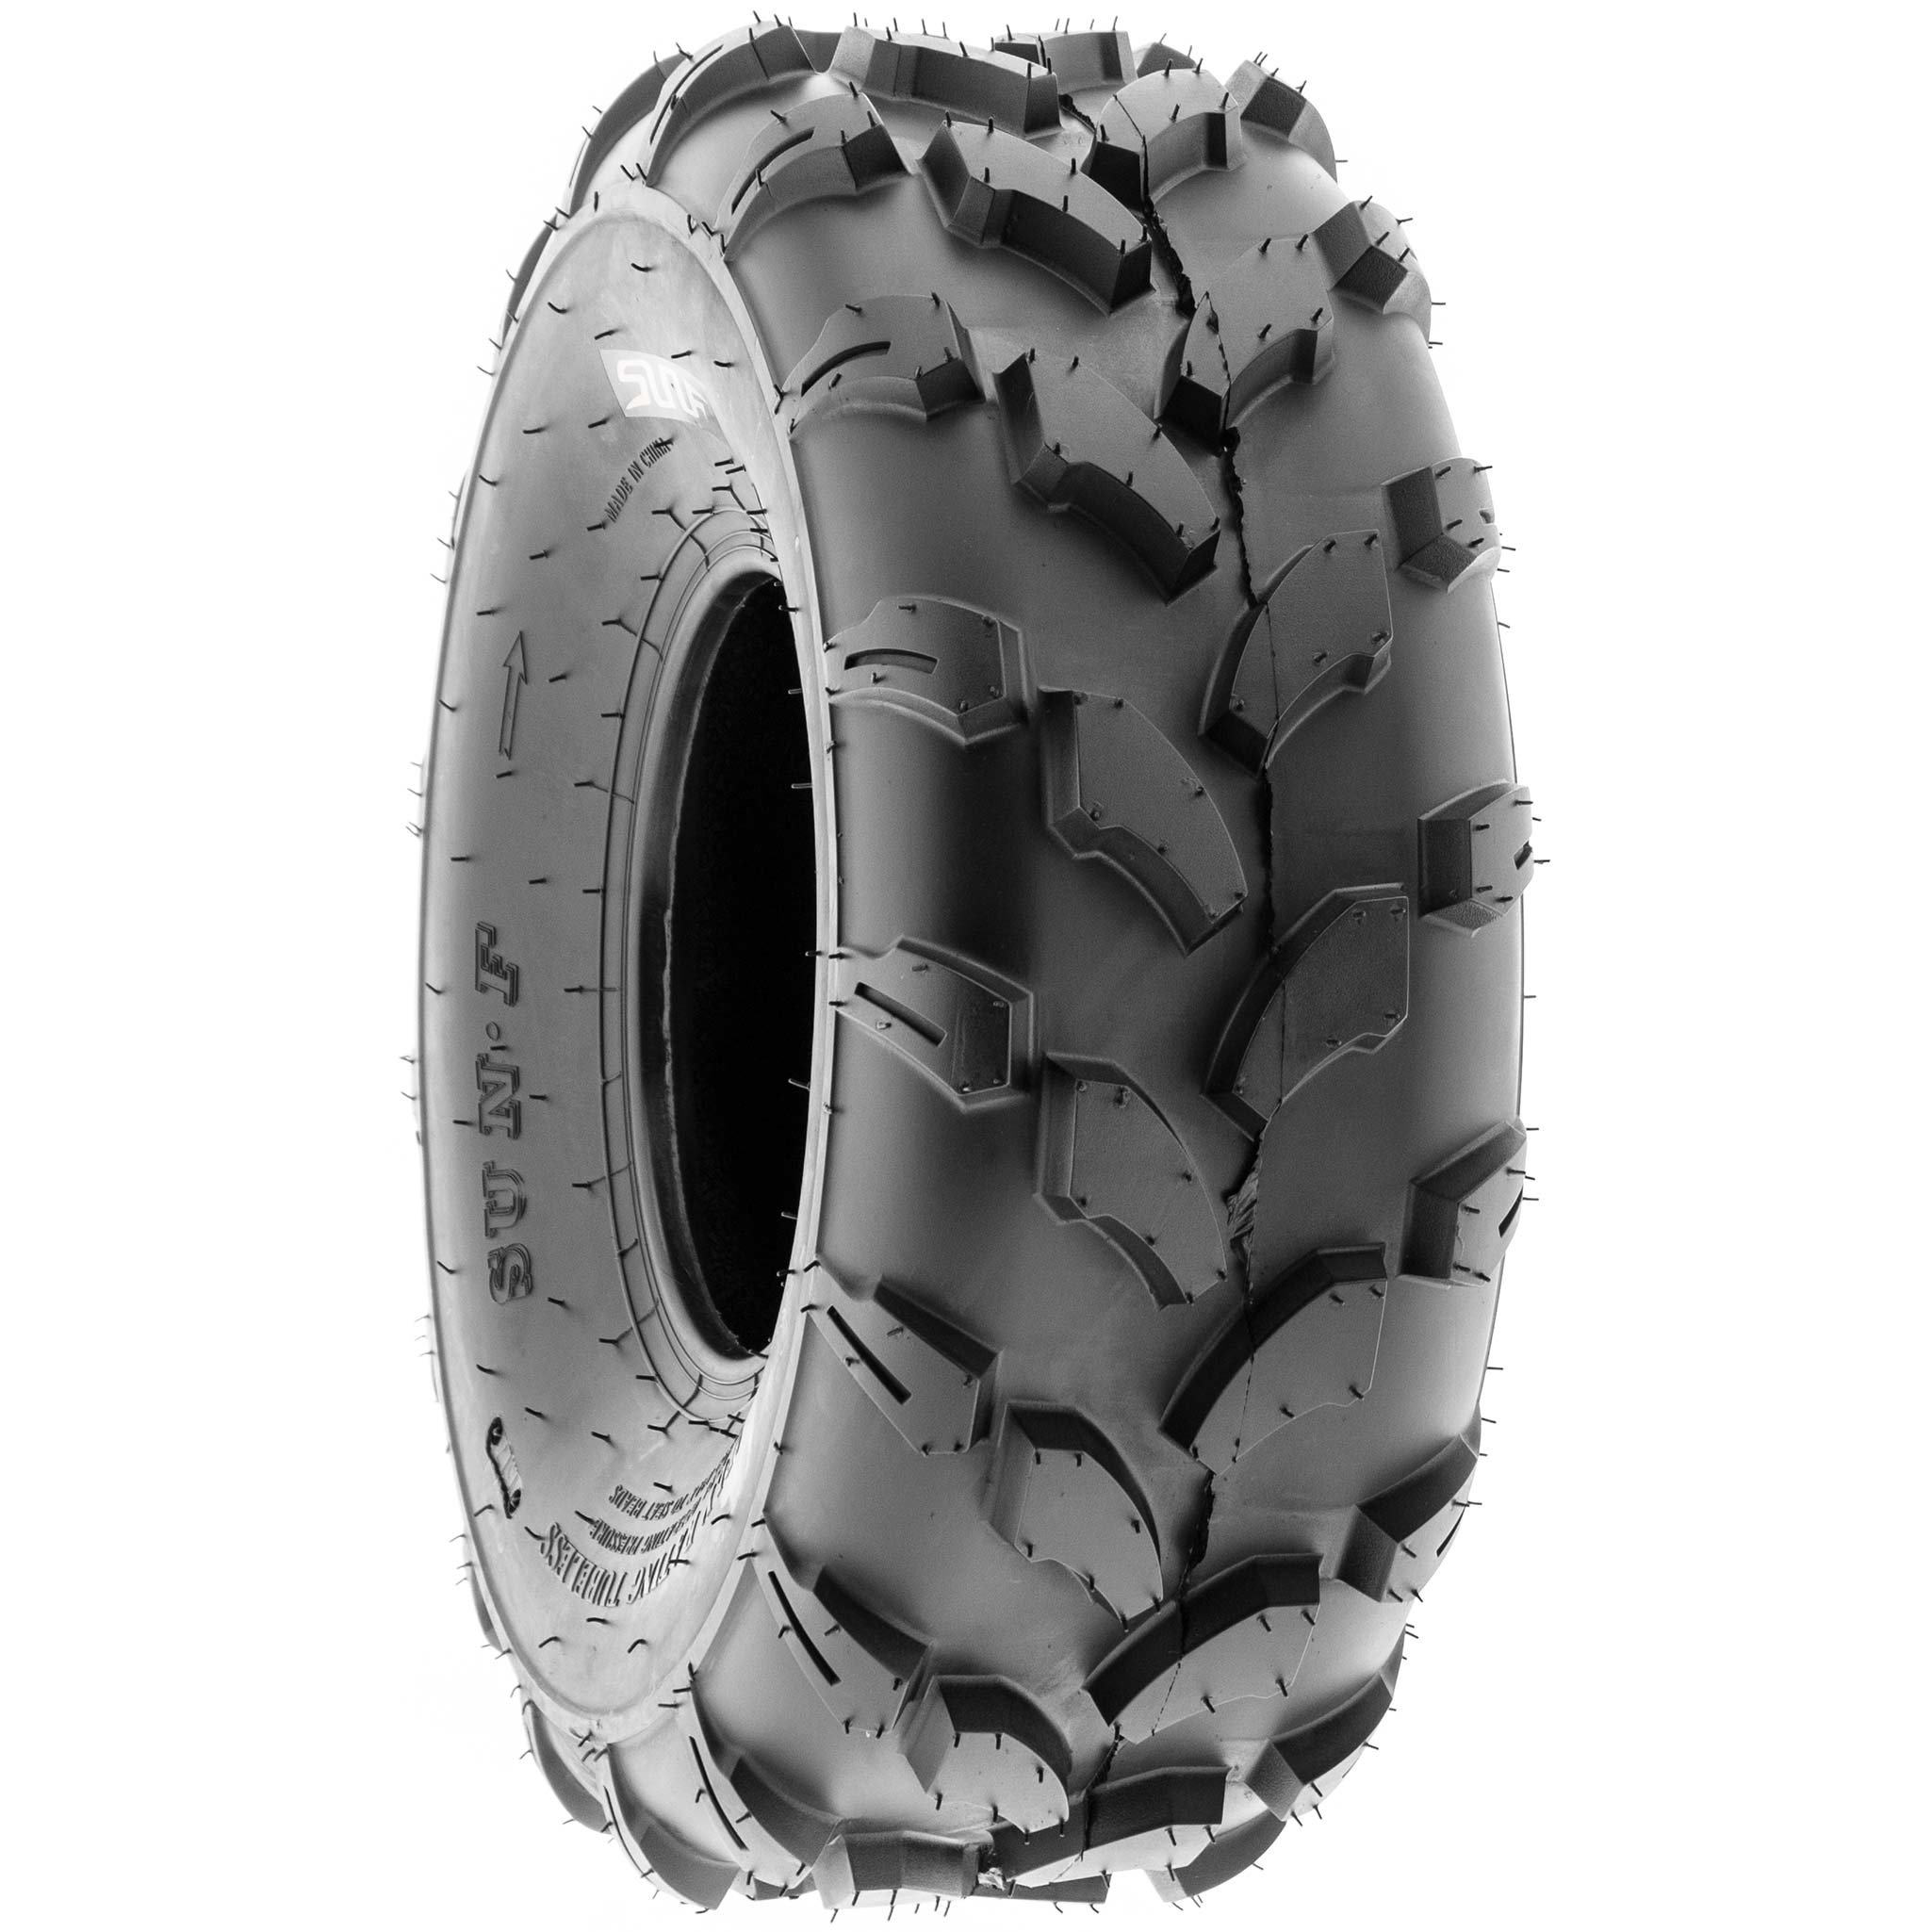 SunF 19x7-8 19x7x8 ATV UTV All Terrain Trail Replacement 6 PR Tubeless Tires A003, [Set of 2] by SUNF (Image #6)